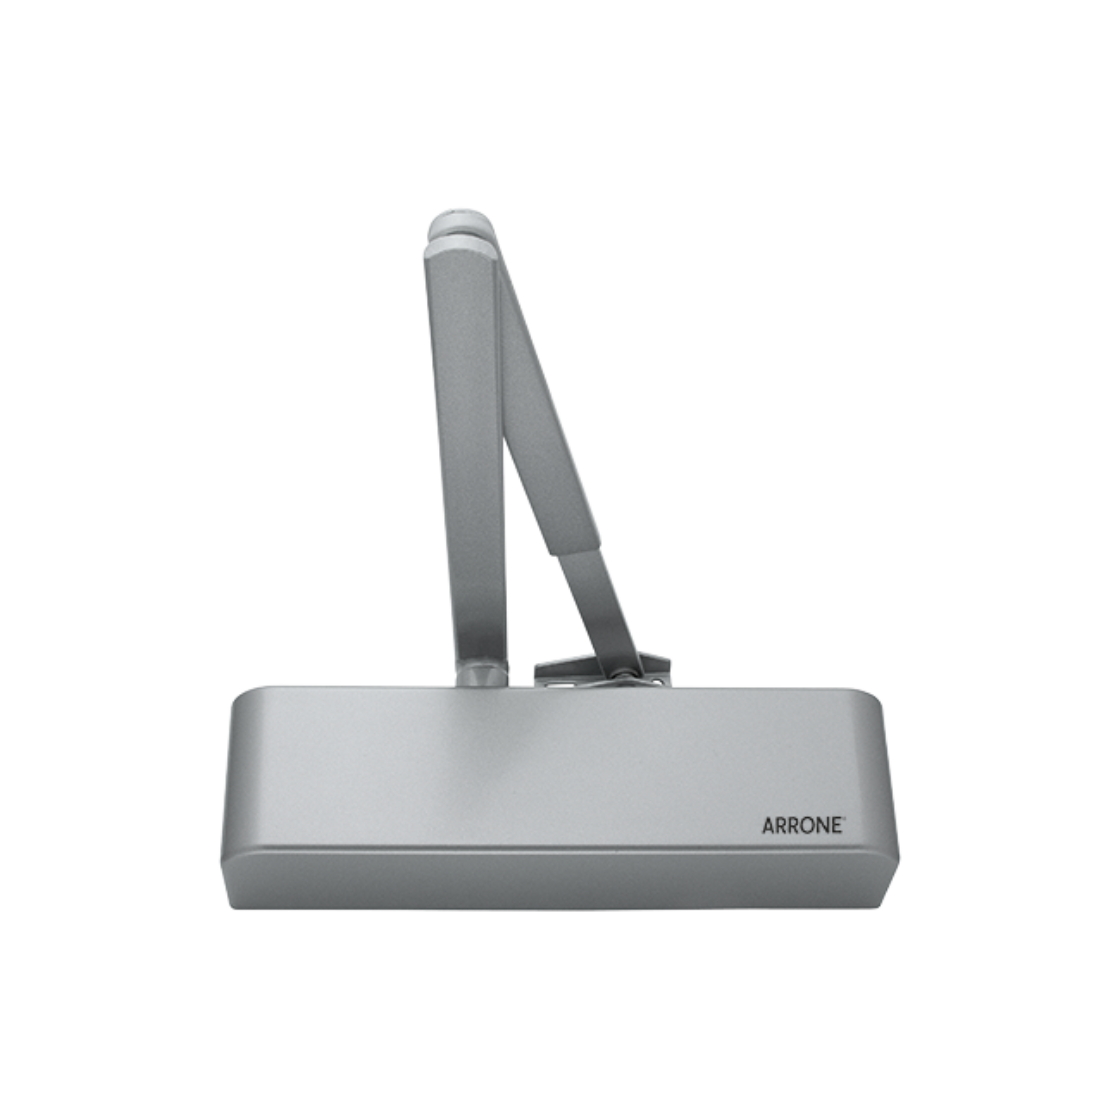 AR1500-SE-SE Silver Door Closer